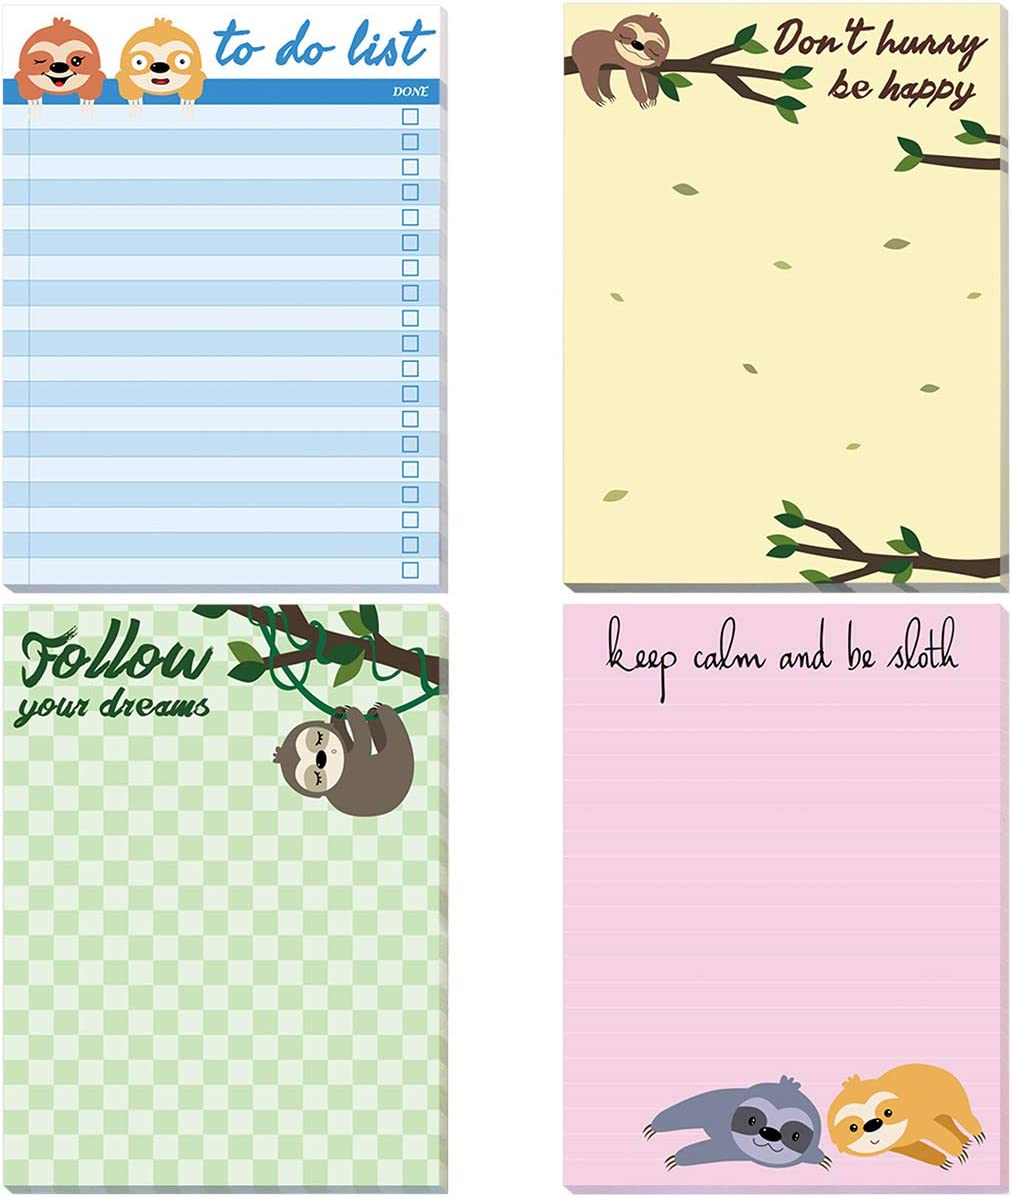 Sloth Memo Pads 4 Pack Funny Animal Notepads for Office Home Gifts School Supply To Do List Lazy Day